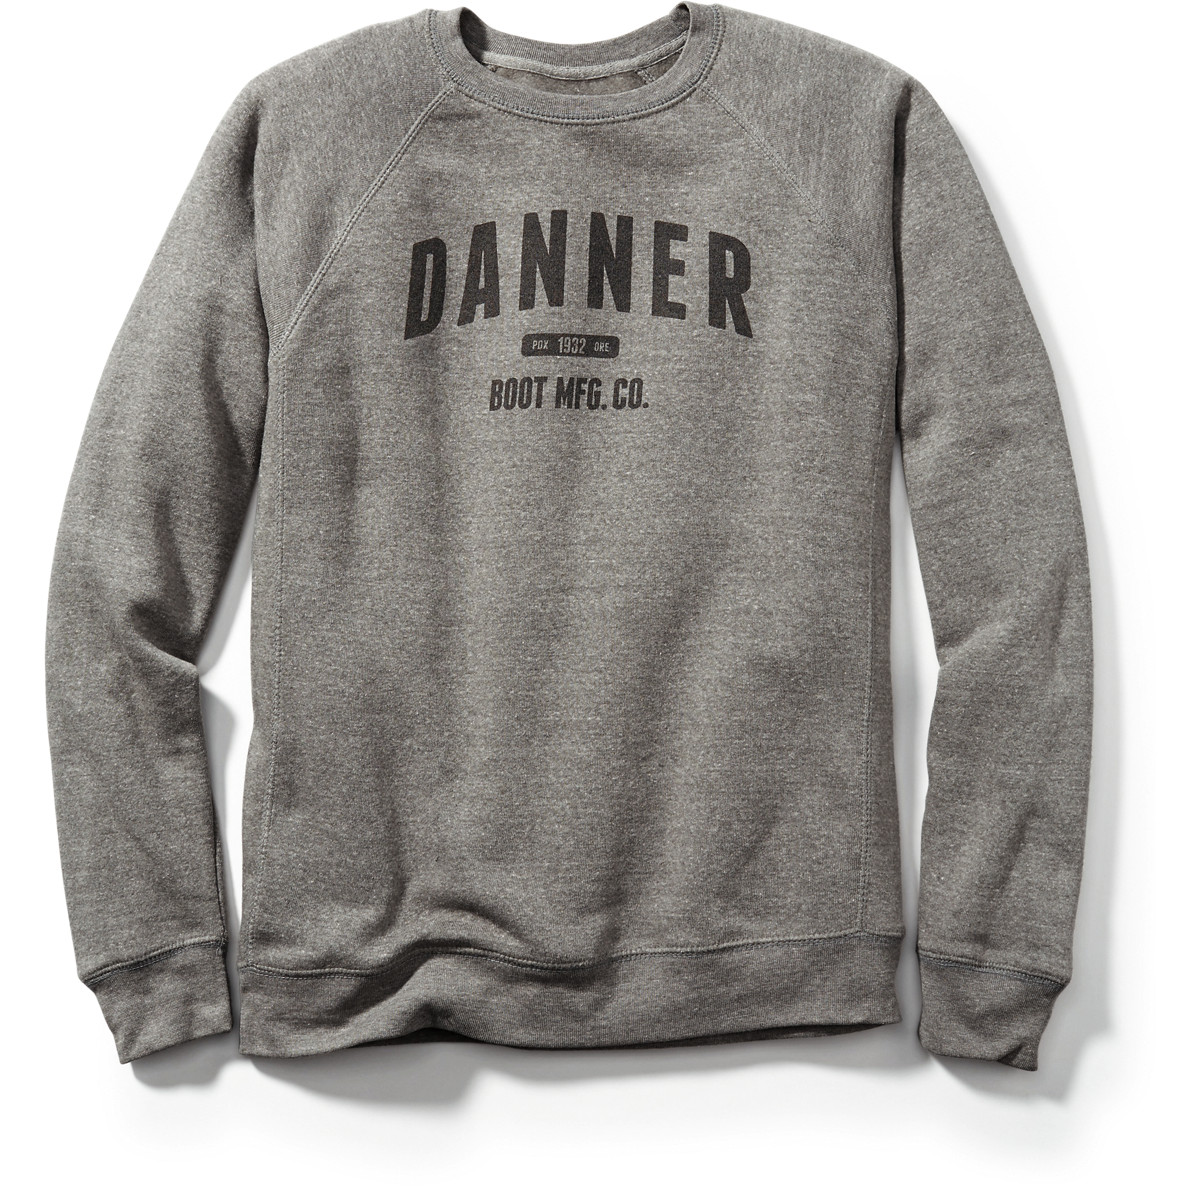 8a51016e82f6 Danner Athletic Sweatshirt - Heather Gray Danner Athletic Sweatshirt - Heather  Gray ...